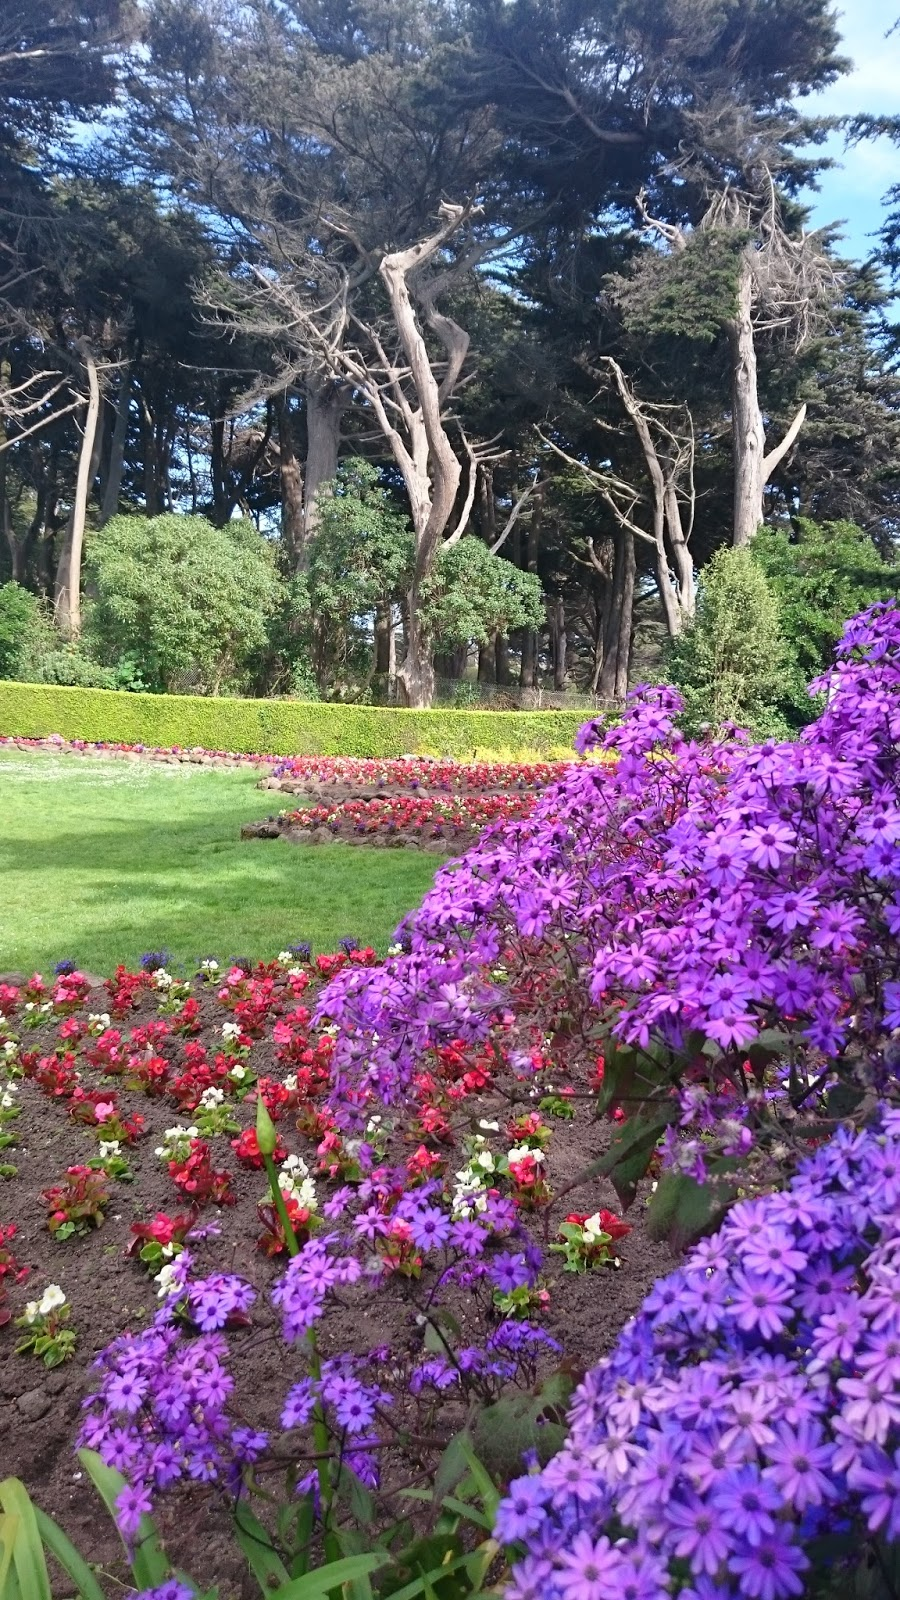 Flowers in Golden Gate Park San Francisco